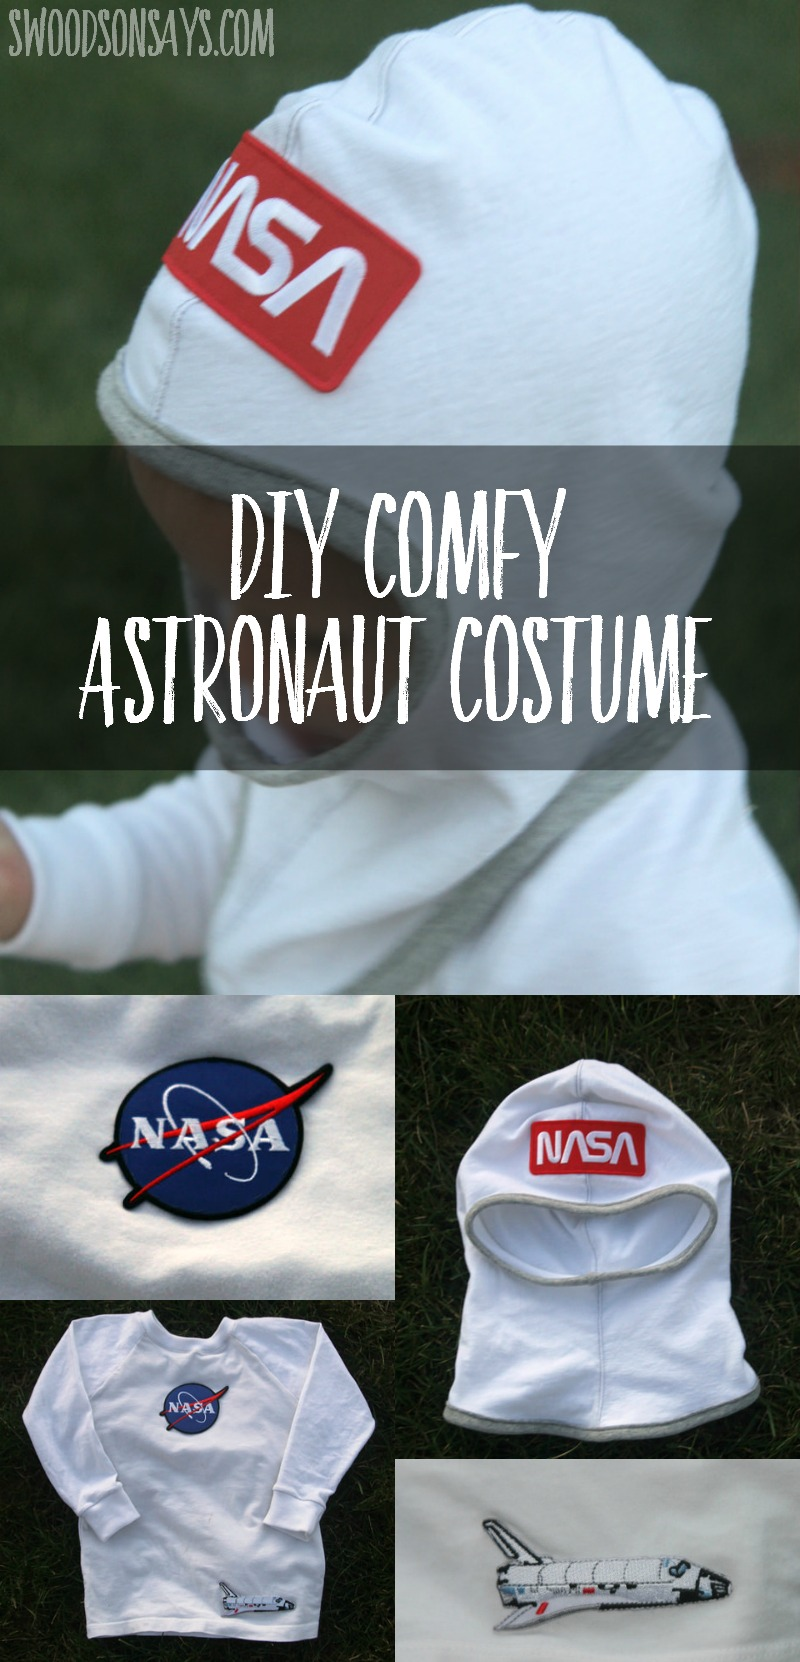 Diy Toddler Astronaut Costume Sewing Tutorial Swoodson Says